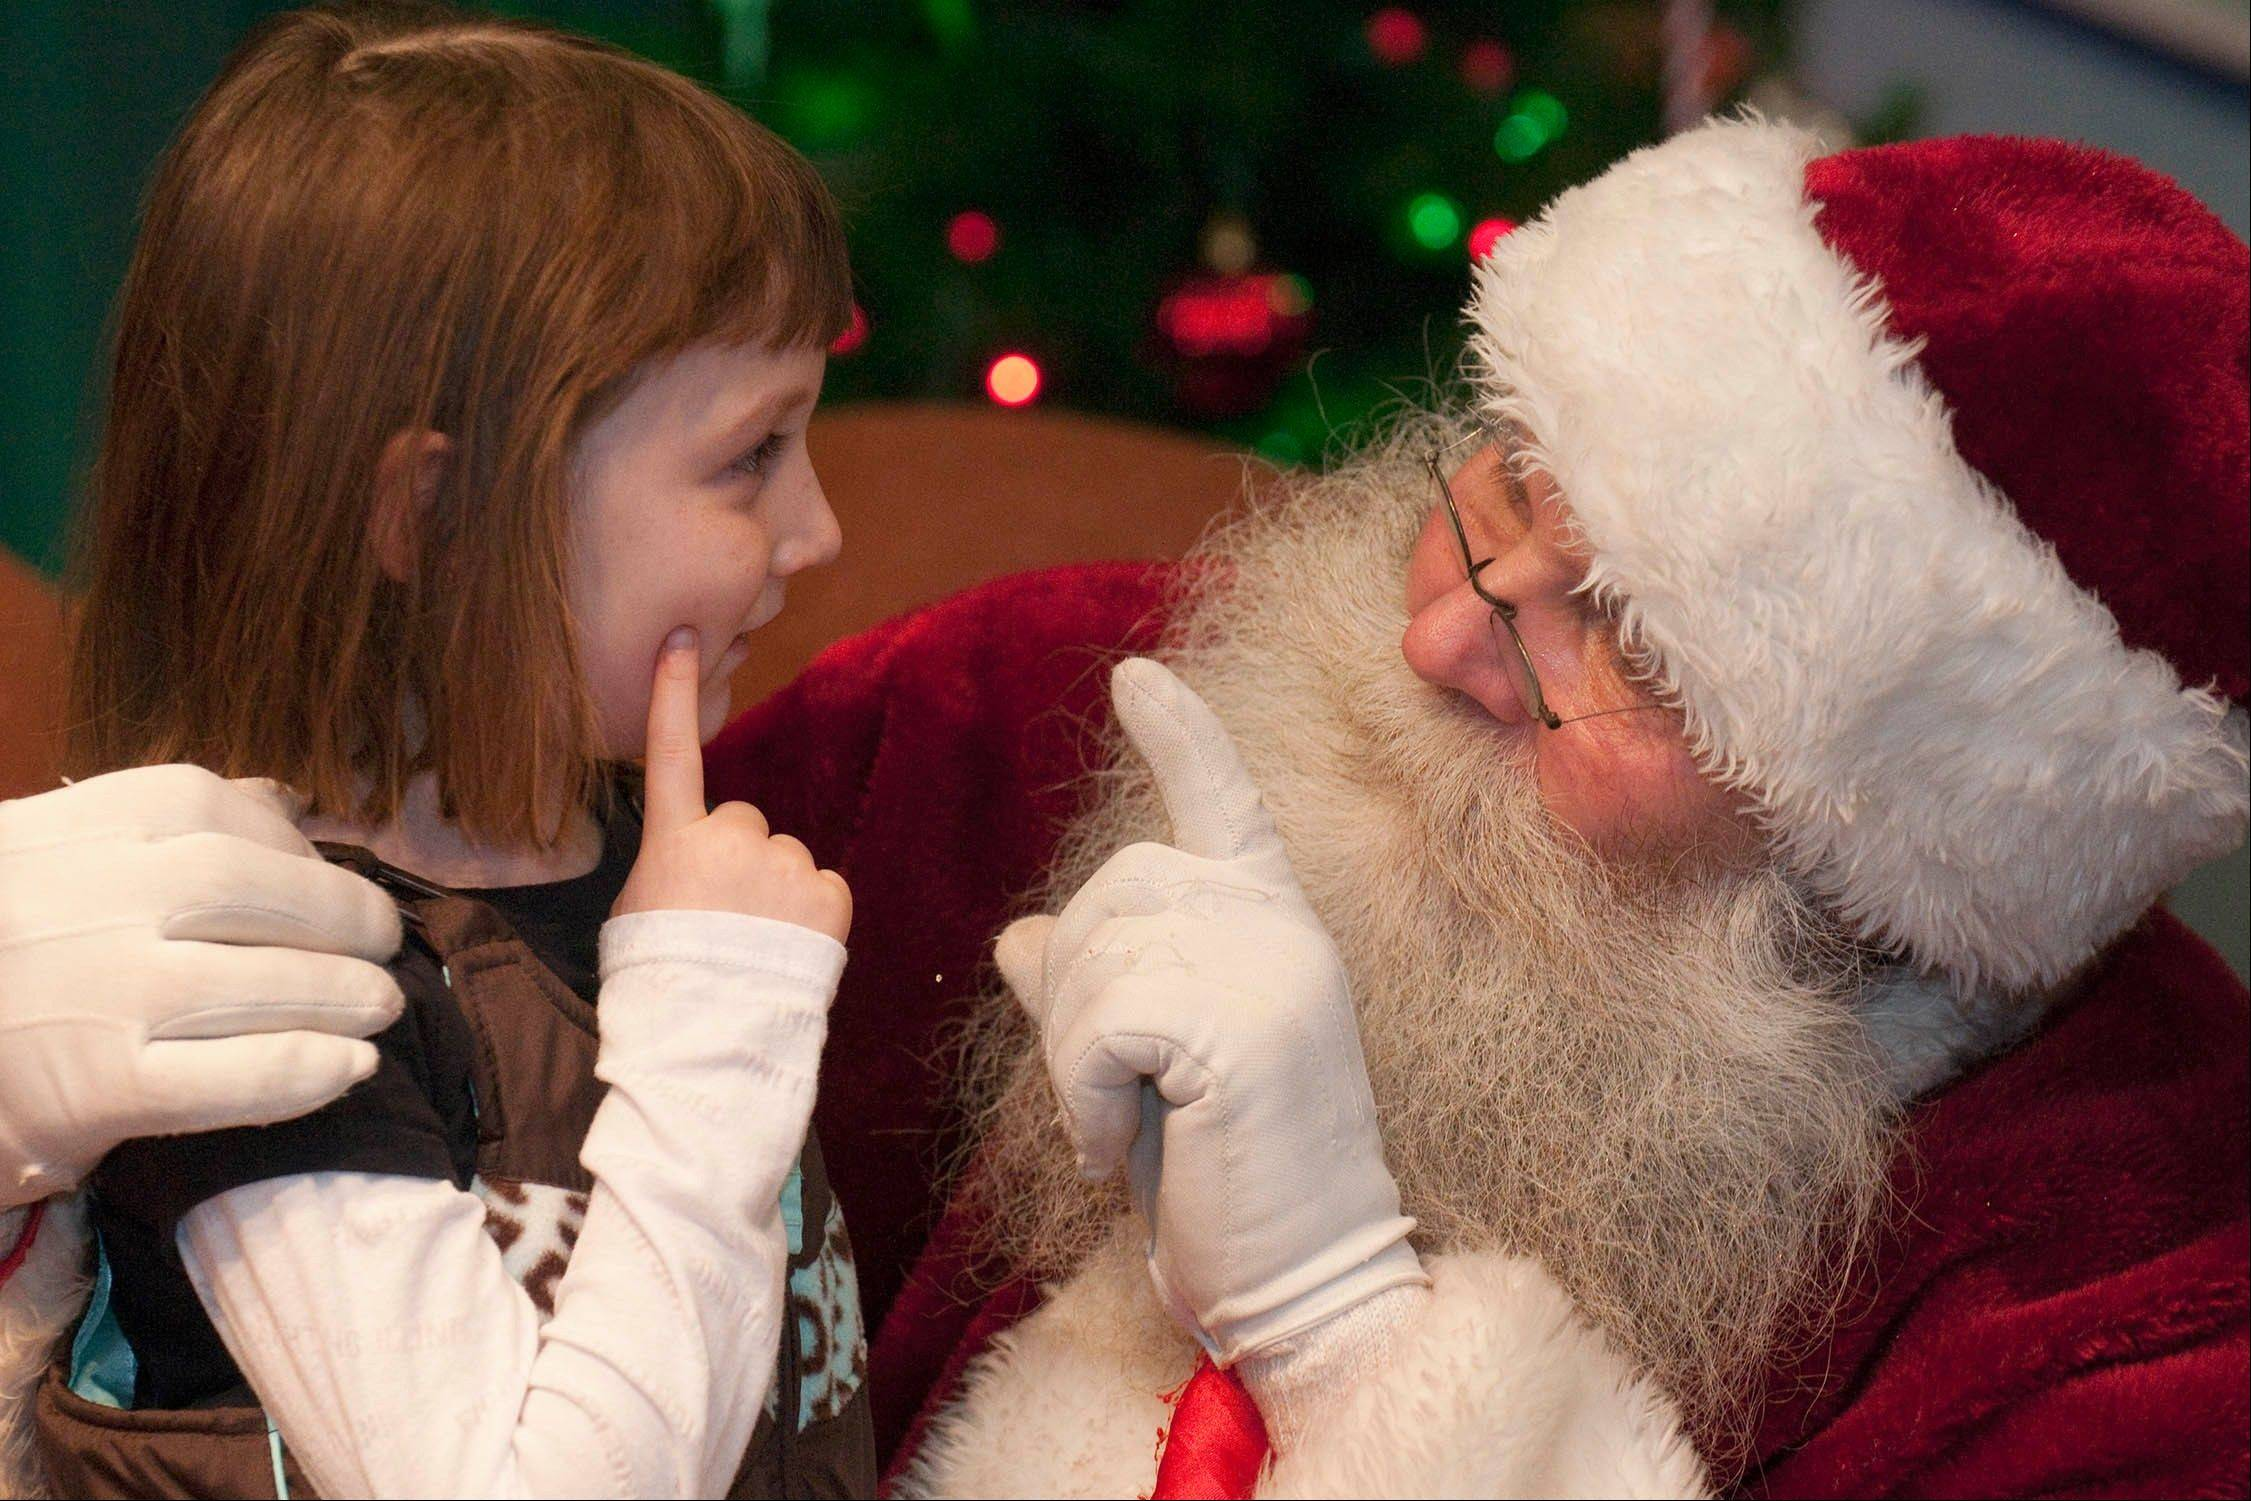 Courtesy of Scott Hardesty/ Chicago Zoological SocietyYoungsters can come face-to-face with Santa Claus himself at the annual Holiday Magic celebration at Brookfield Zoo.